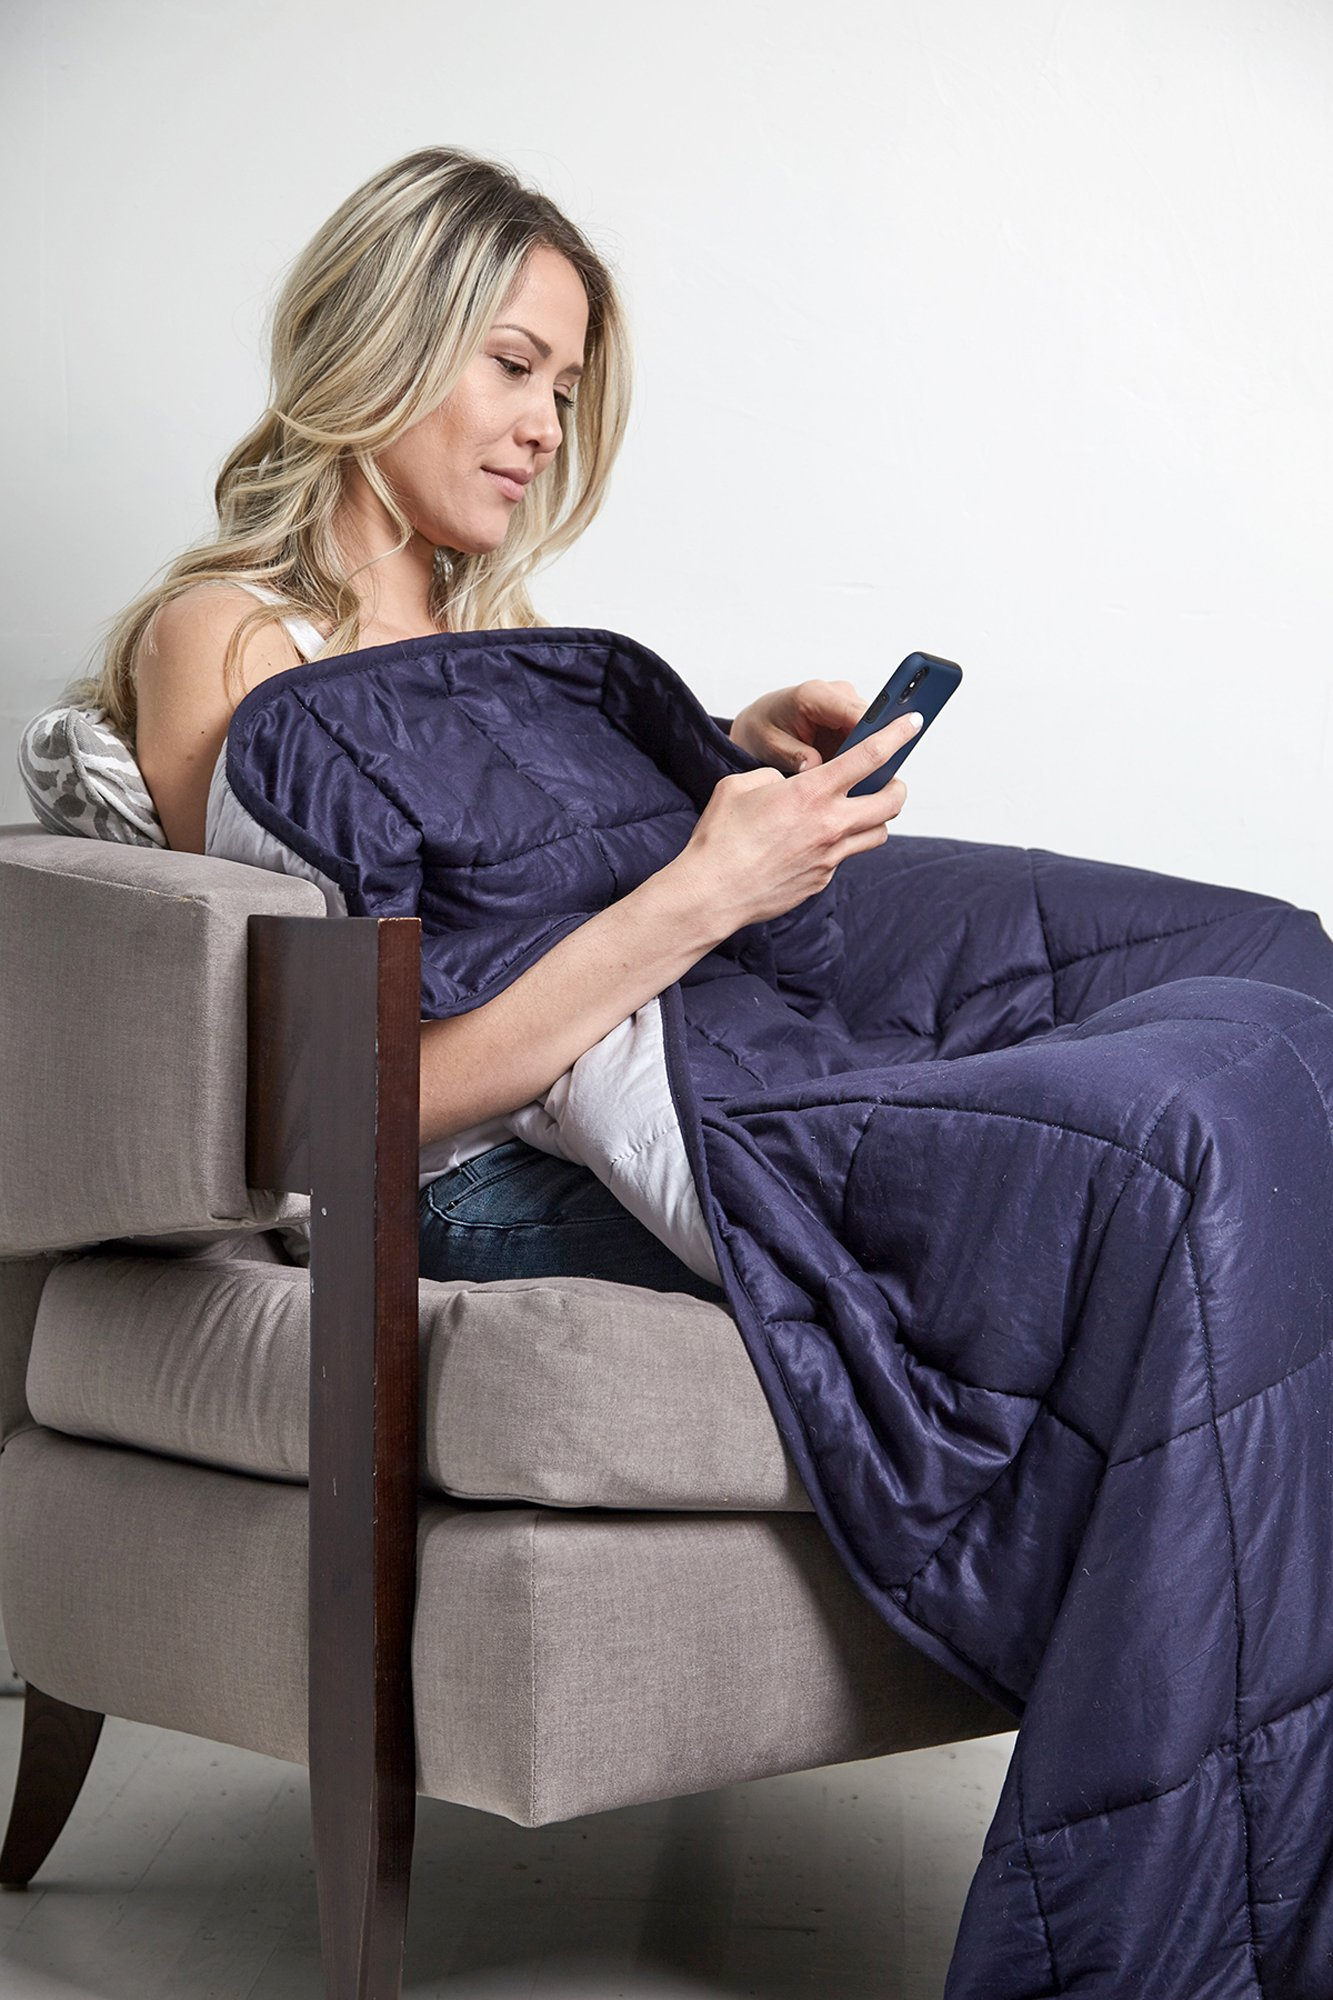 """Weighted Blanket Sensory Solutions for Adults and Kids   Size Large 15 lbs 48"""" X 72"""" Navy Blue   Deep Pressure for Sound Sleep and Natural Stress Relief from Anxiety related to Autism, PTSD, Insomnia by DreamStill (Image #3)"""